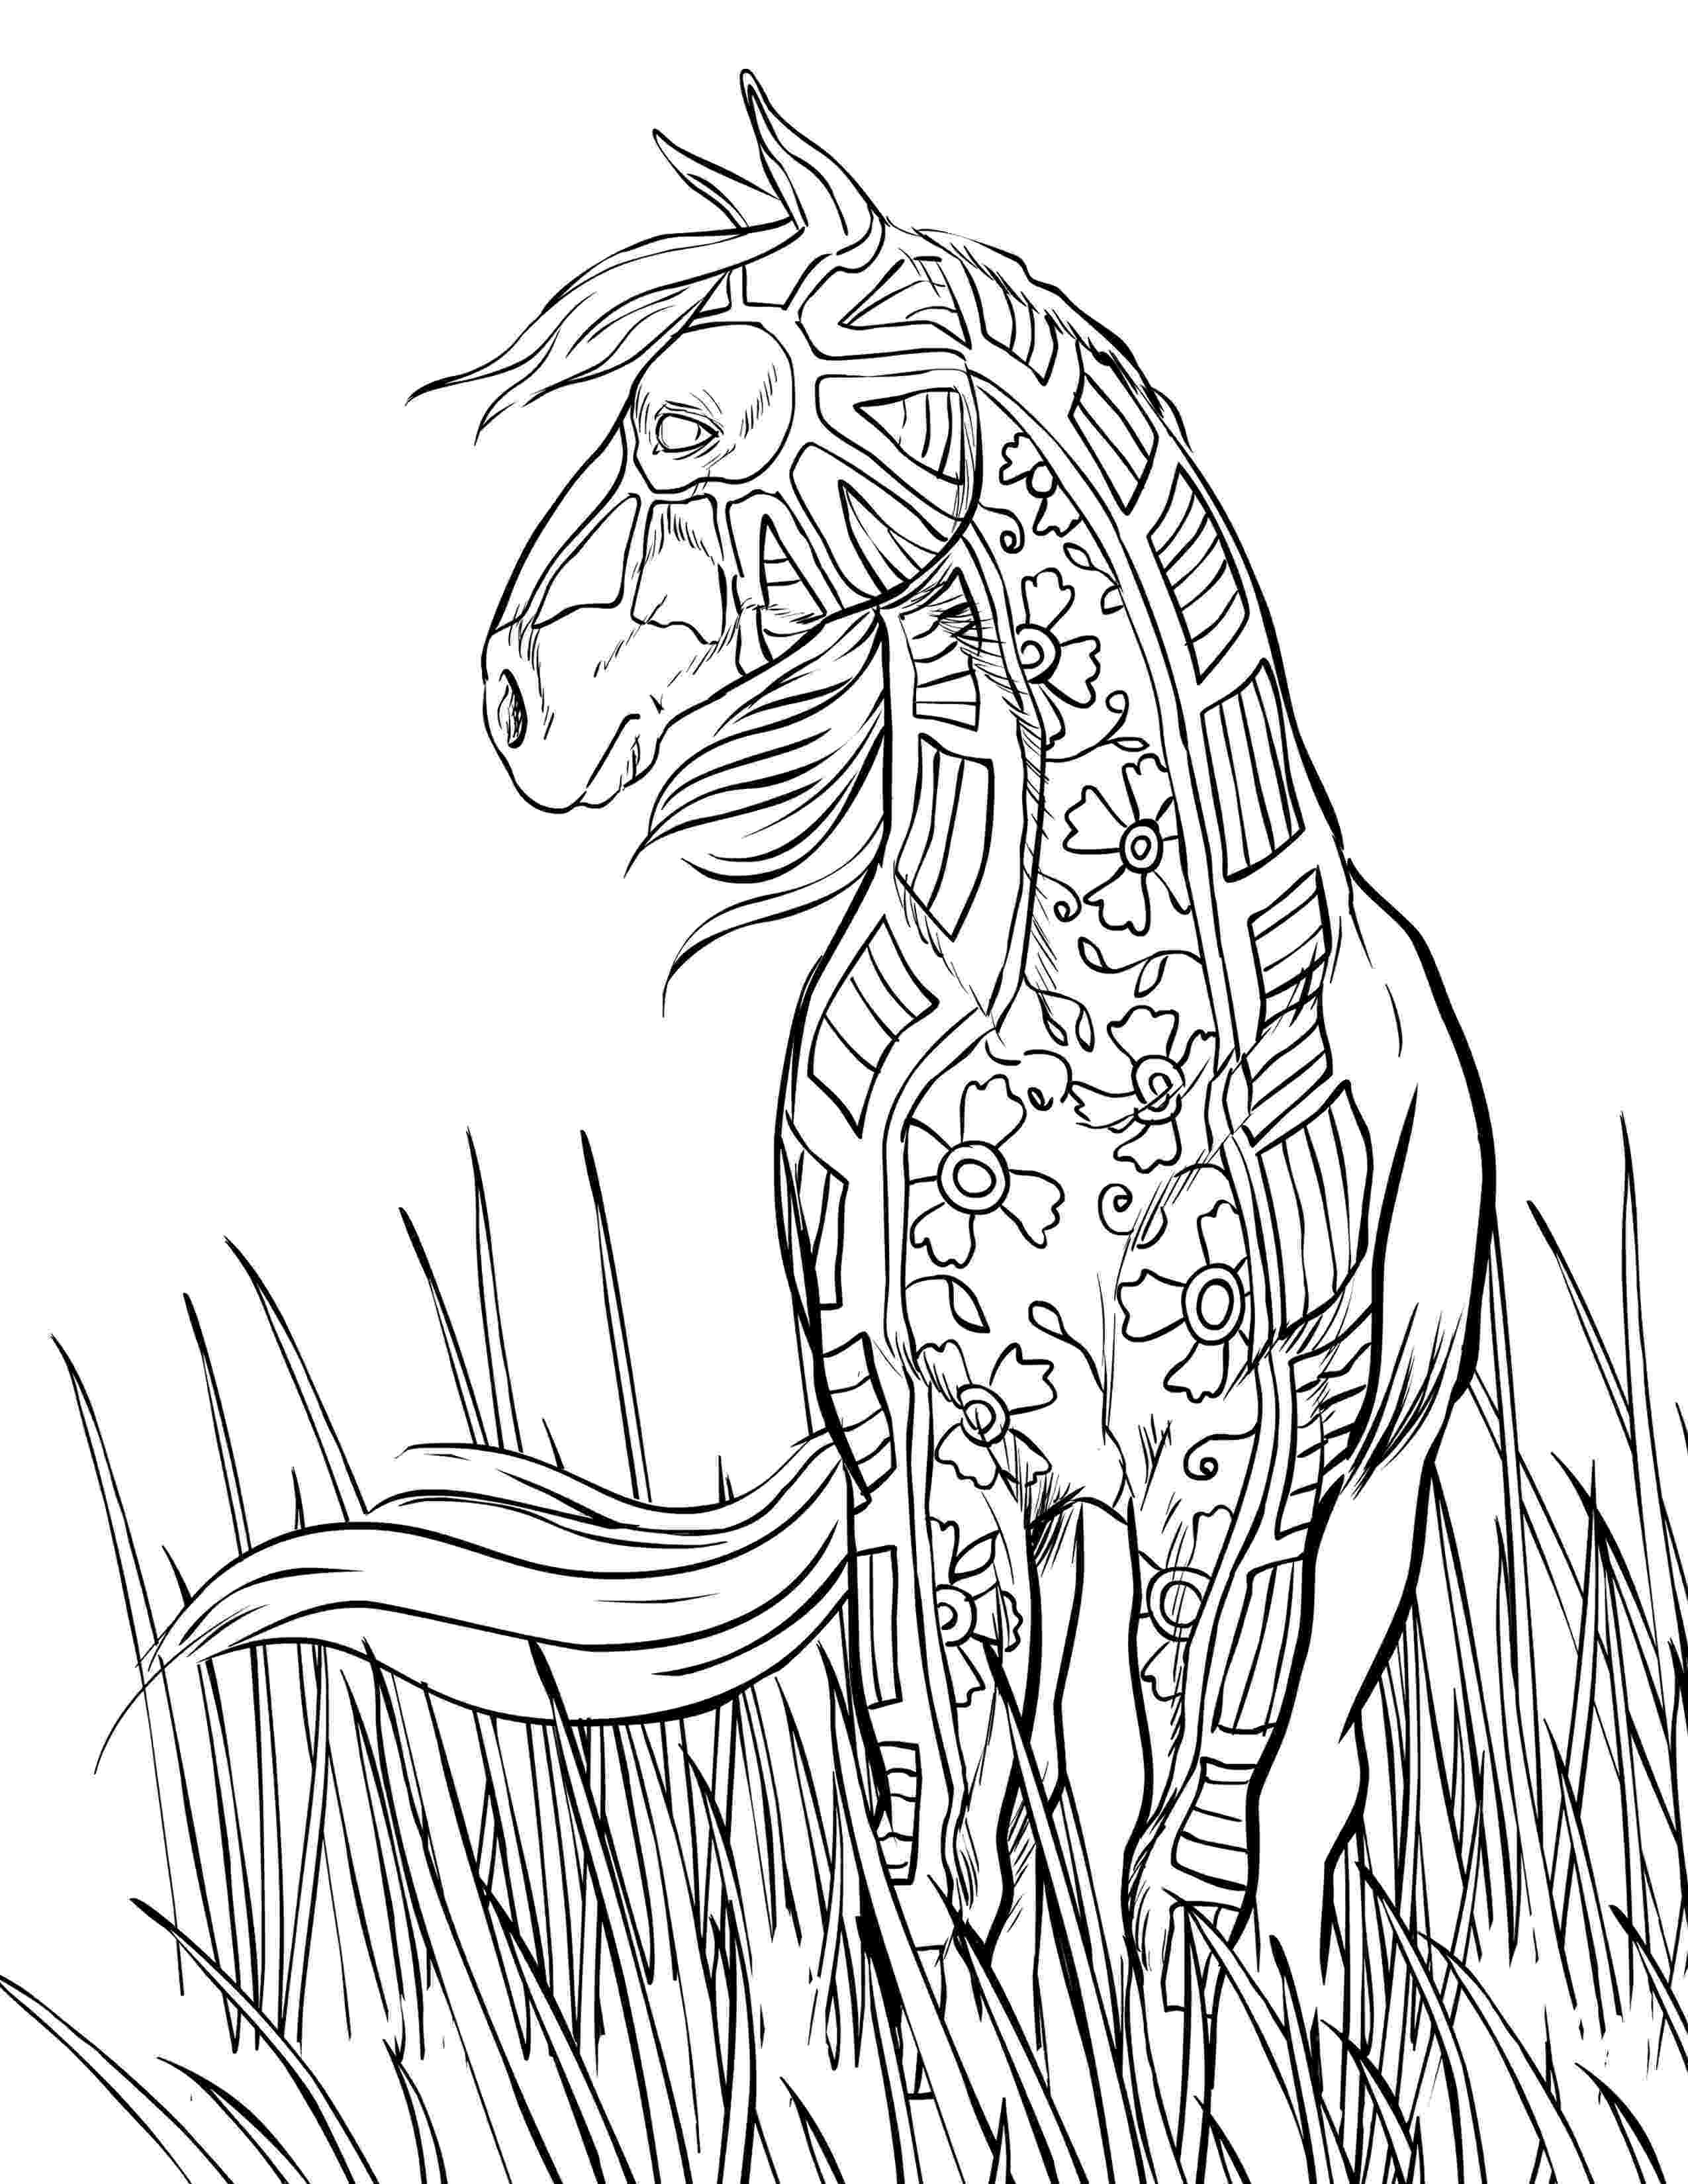 free coloring pages of horses wild horses coloring pages getcoloringpagescom free of pages coloring horses